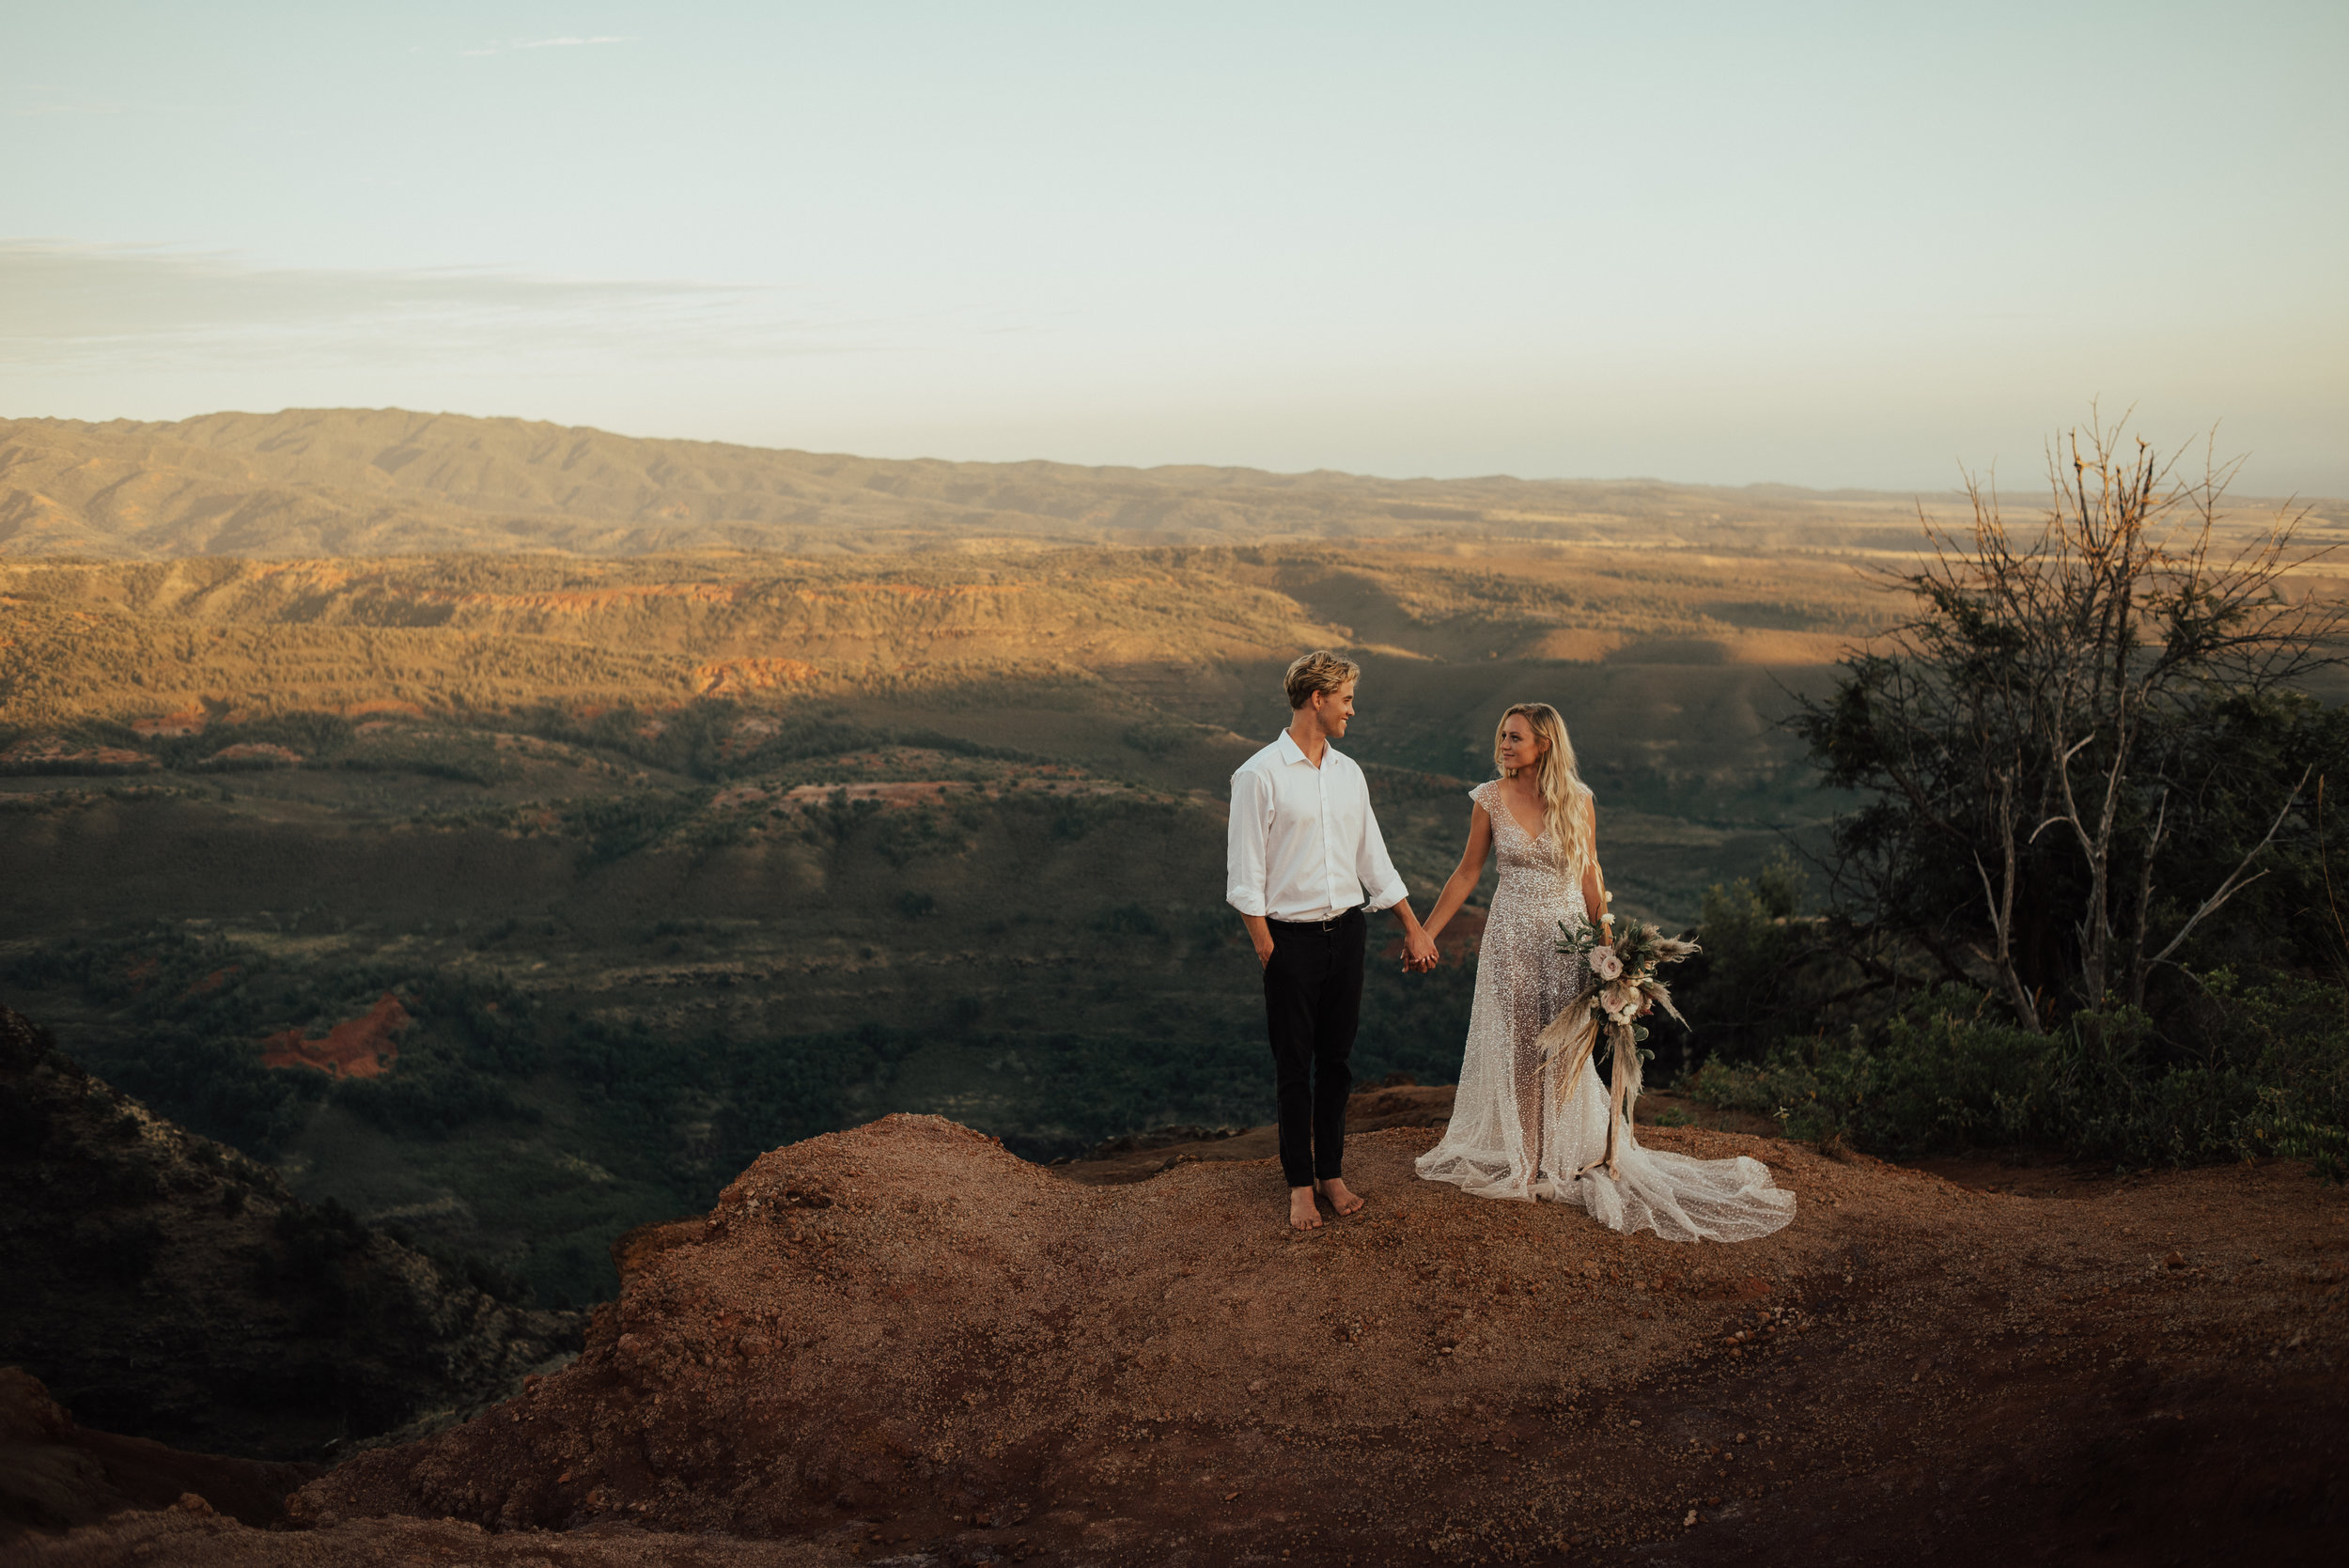 Waimea Canyon Elopement by SB Photographs01101001000111001110110110100100100001101001DSC_6704DSC_67040001101.jpg